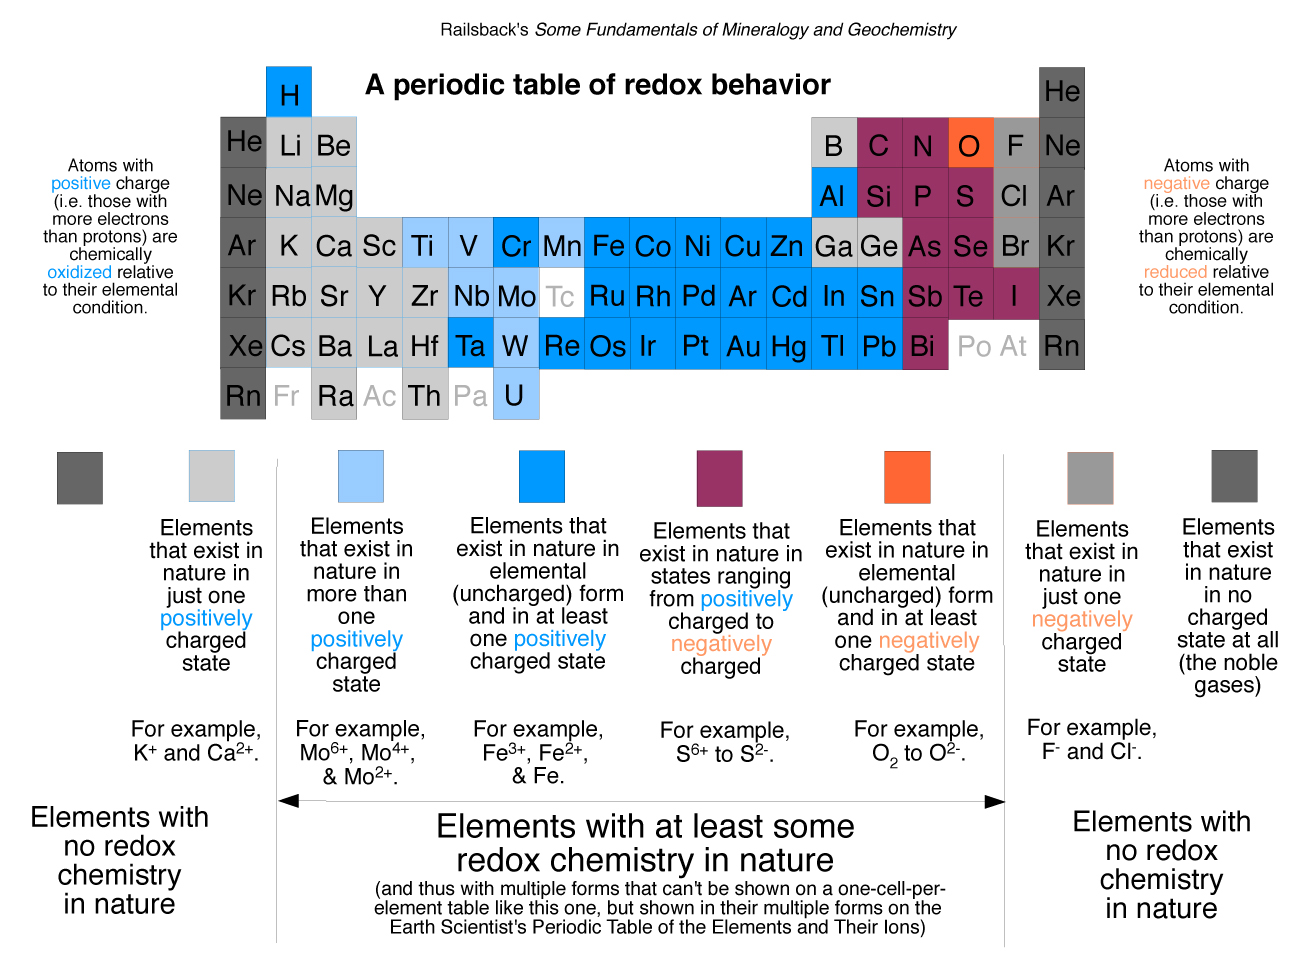 Some Fundamentals of Mineralogy and Geochemistry